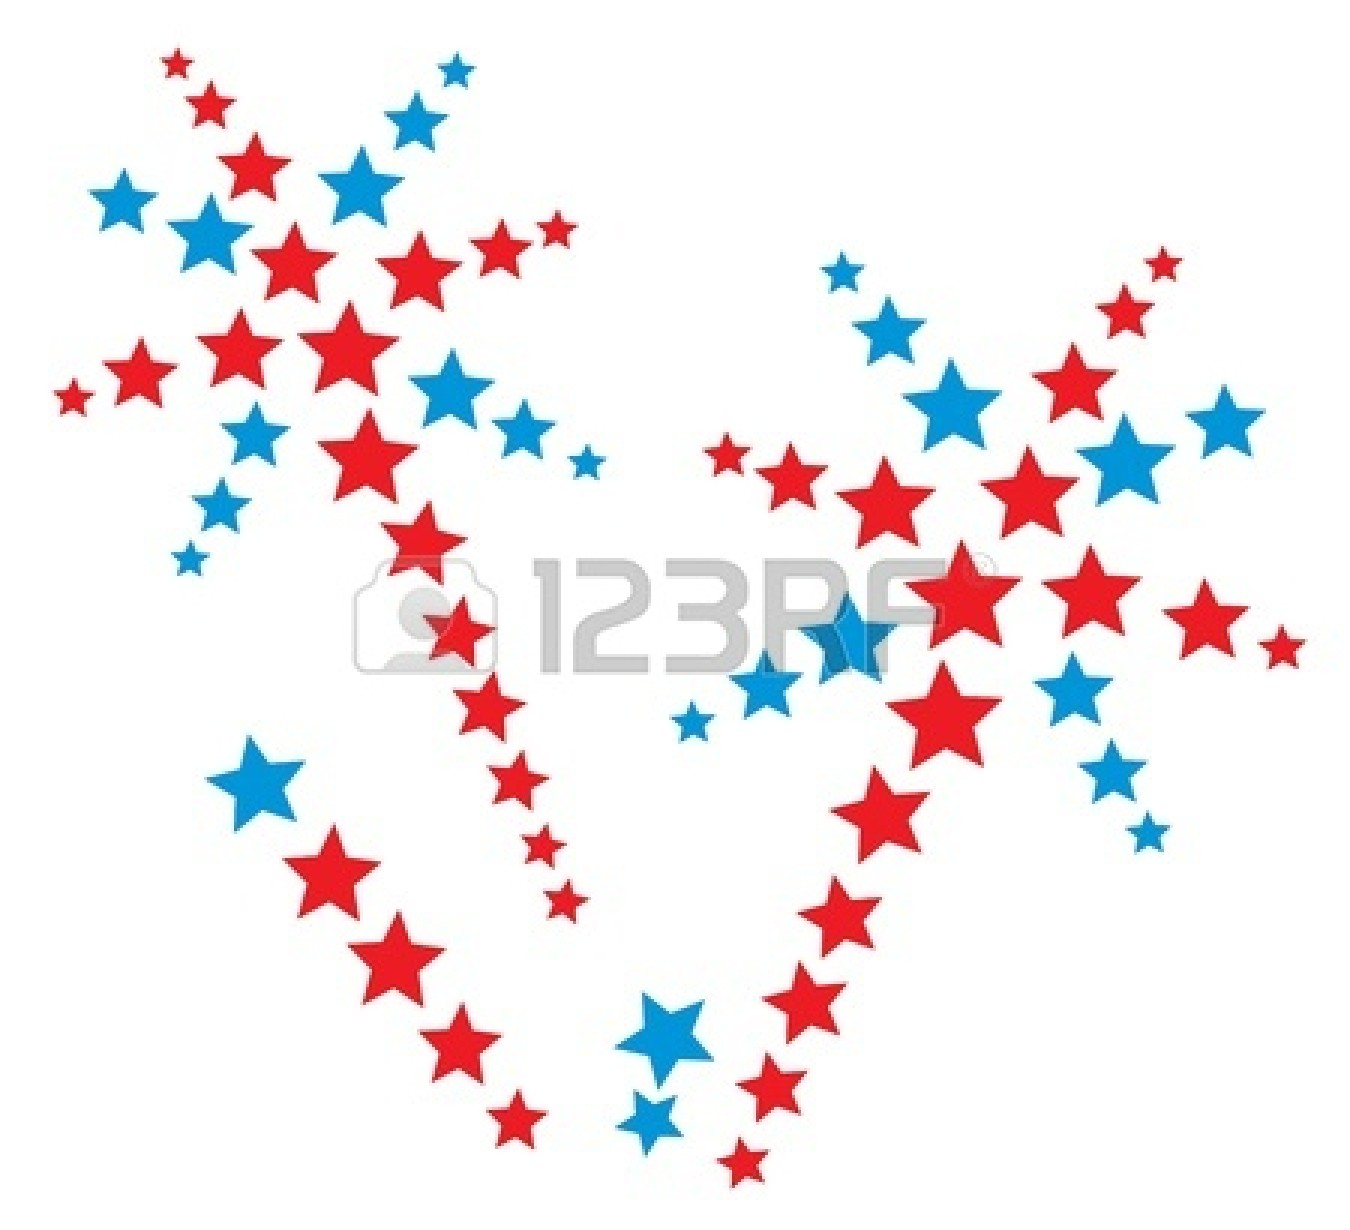 4th Of July Fireworks Background | Clipart Panda - Free Clipart Images